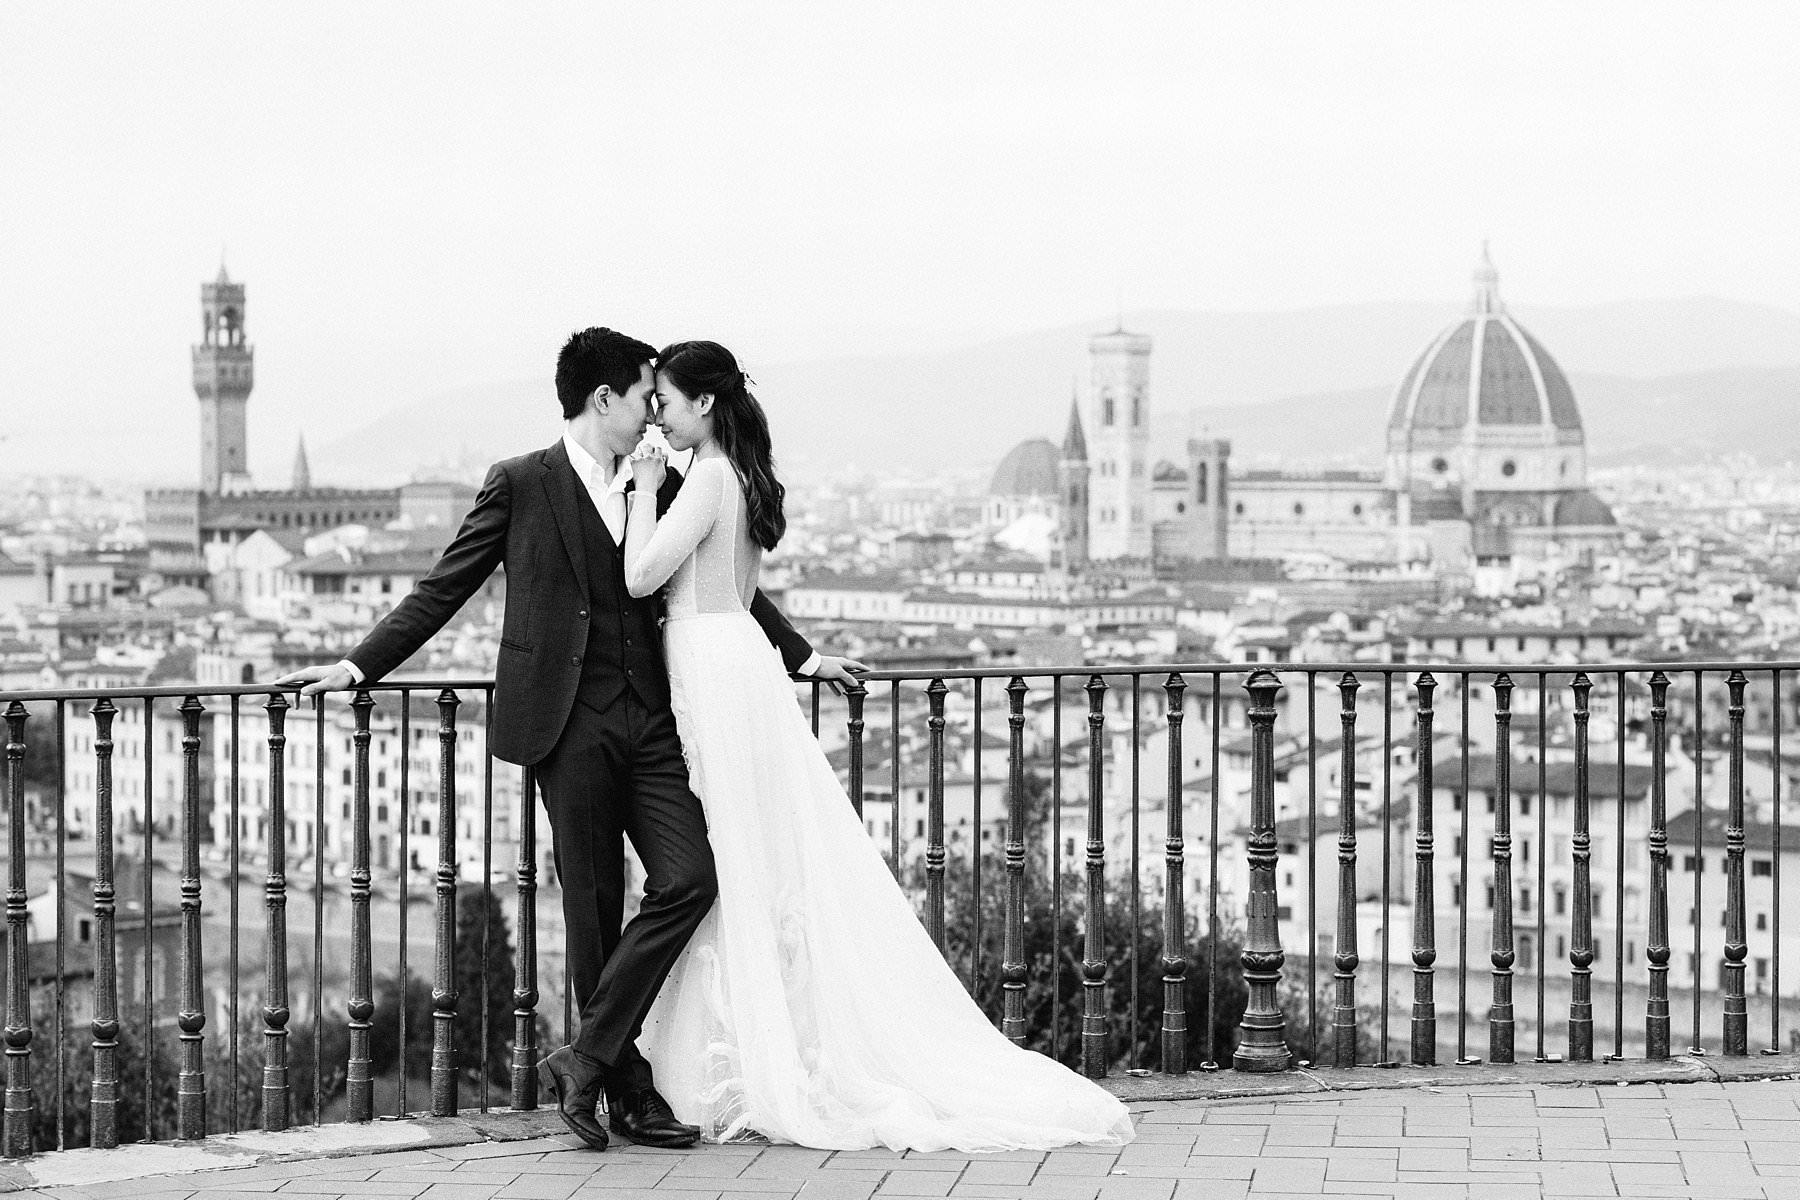 Lovely couple from Hong Kong choses to turn their original pre-wedding photo shoot into the honeymoon during the coronavirus pandemic